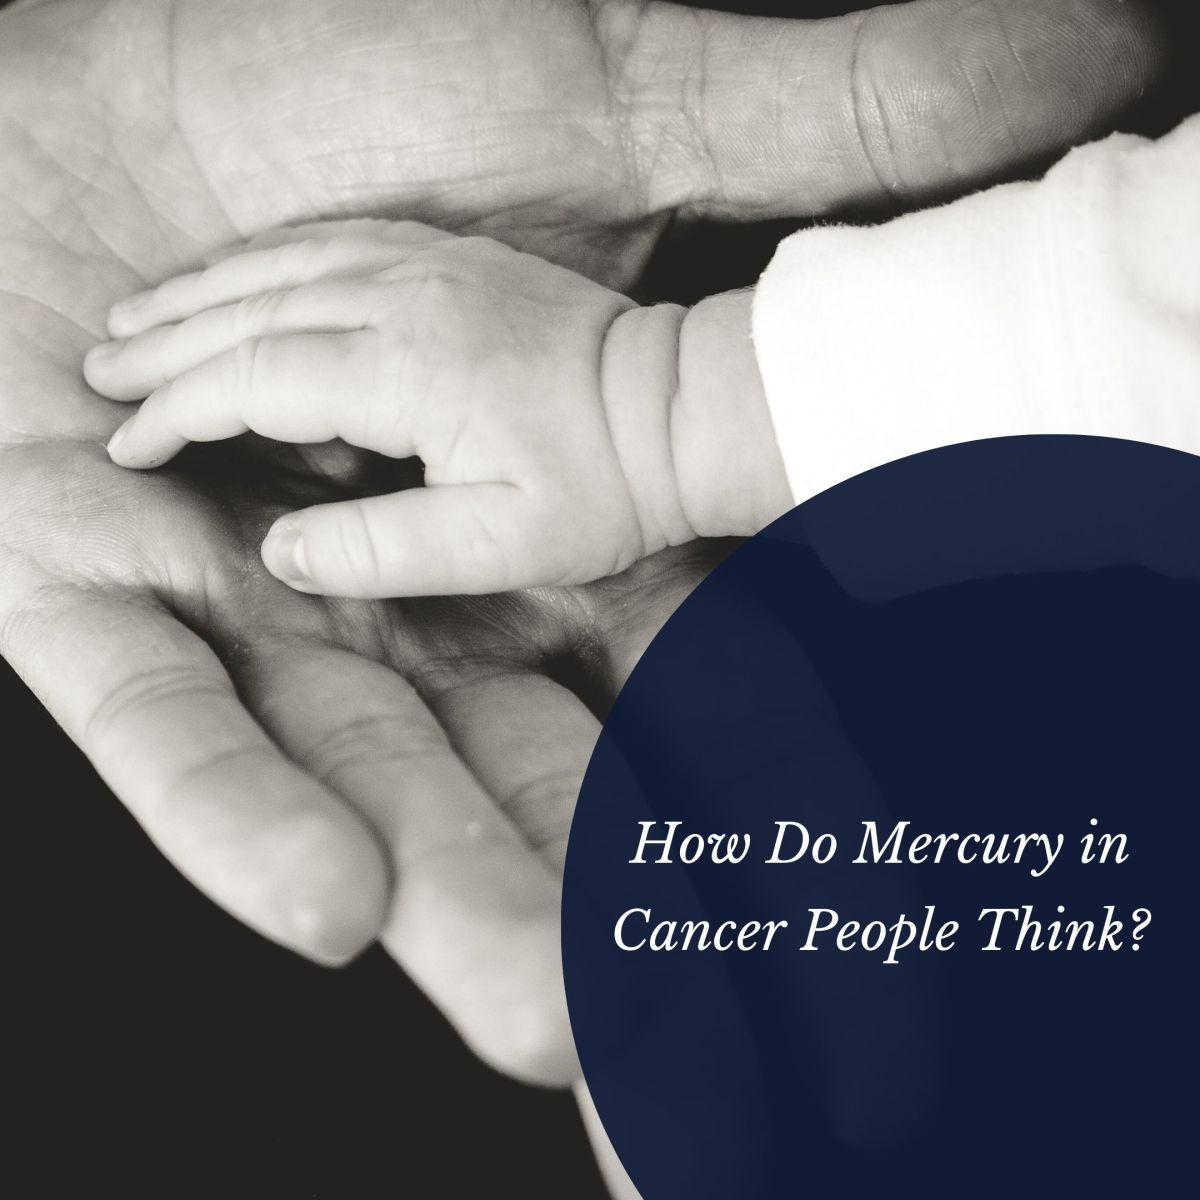 Mercury in Cancer Thinkers